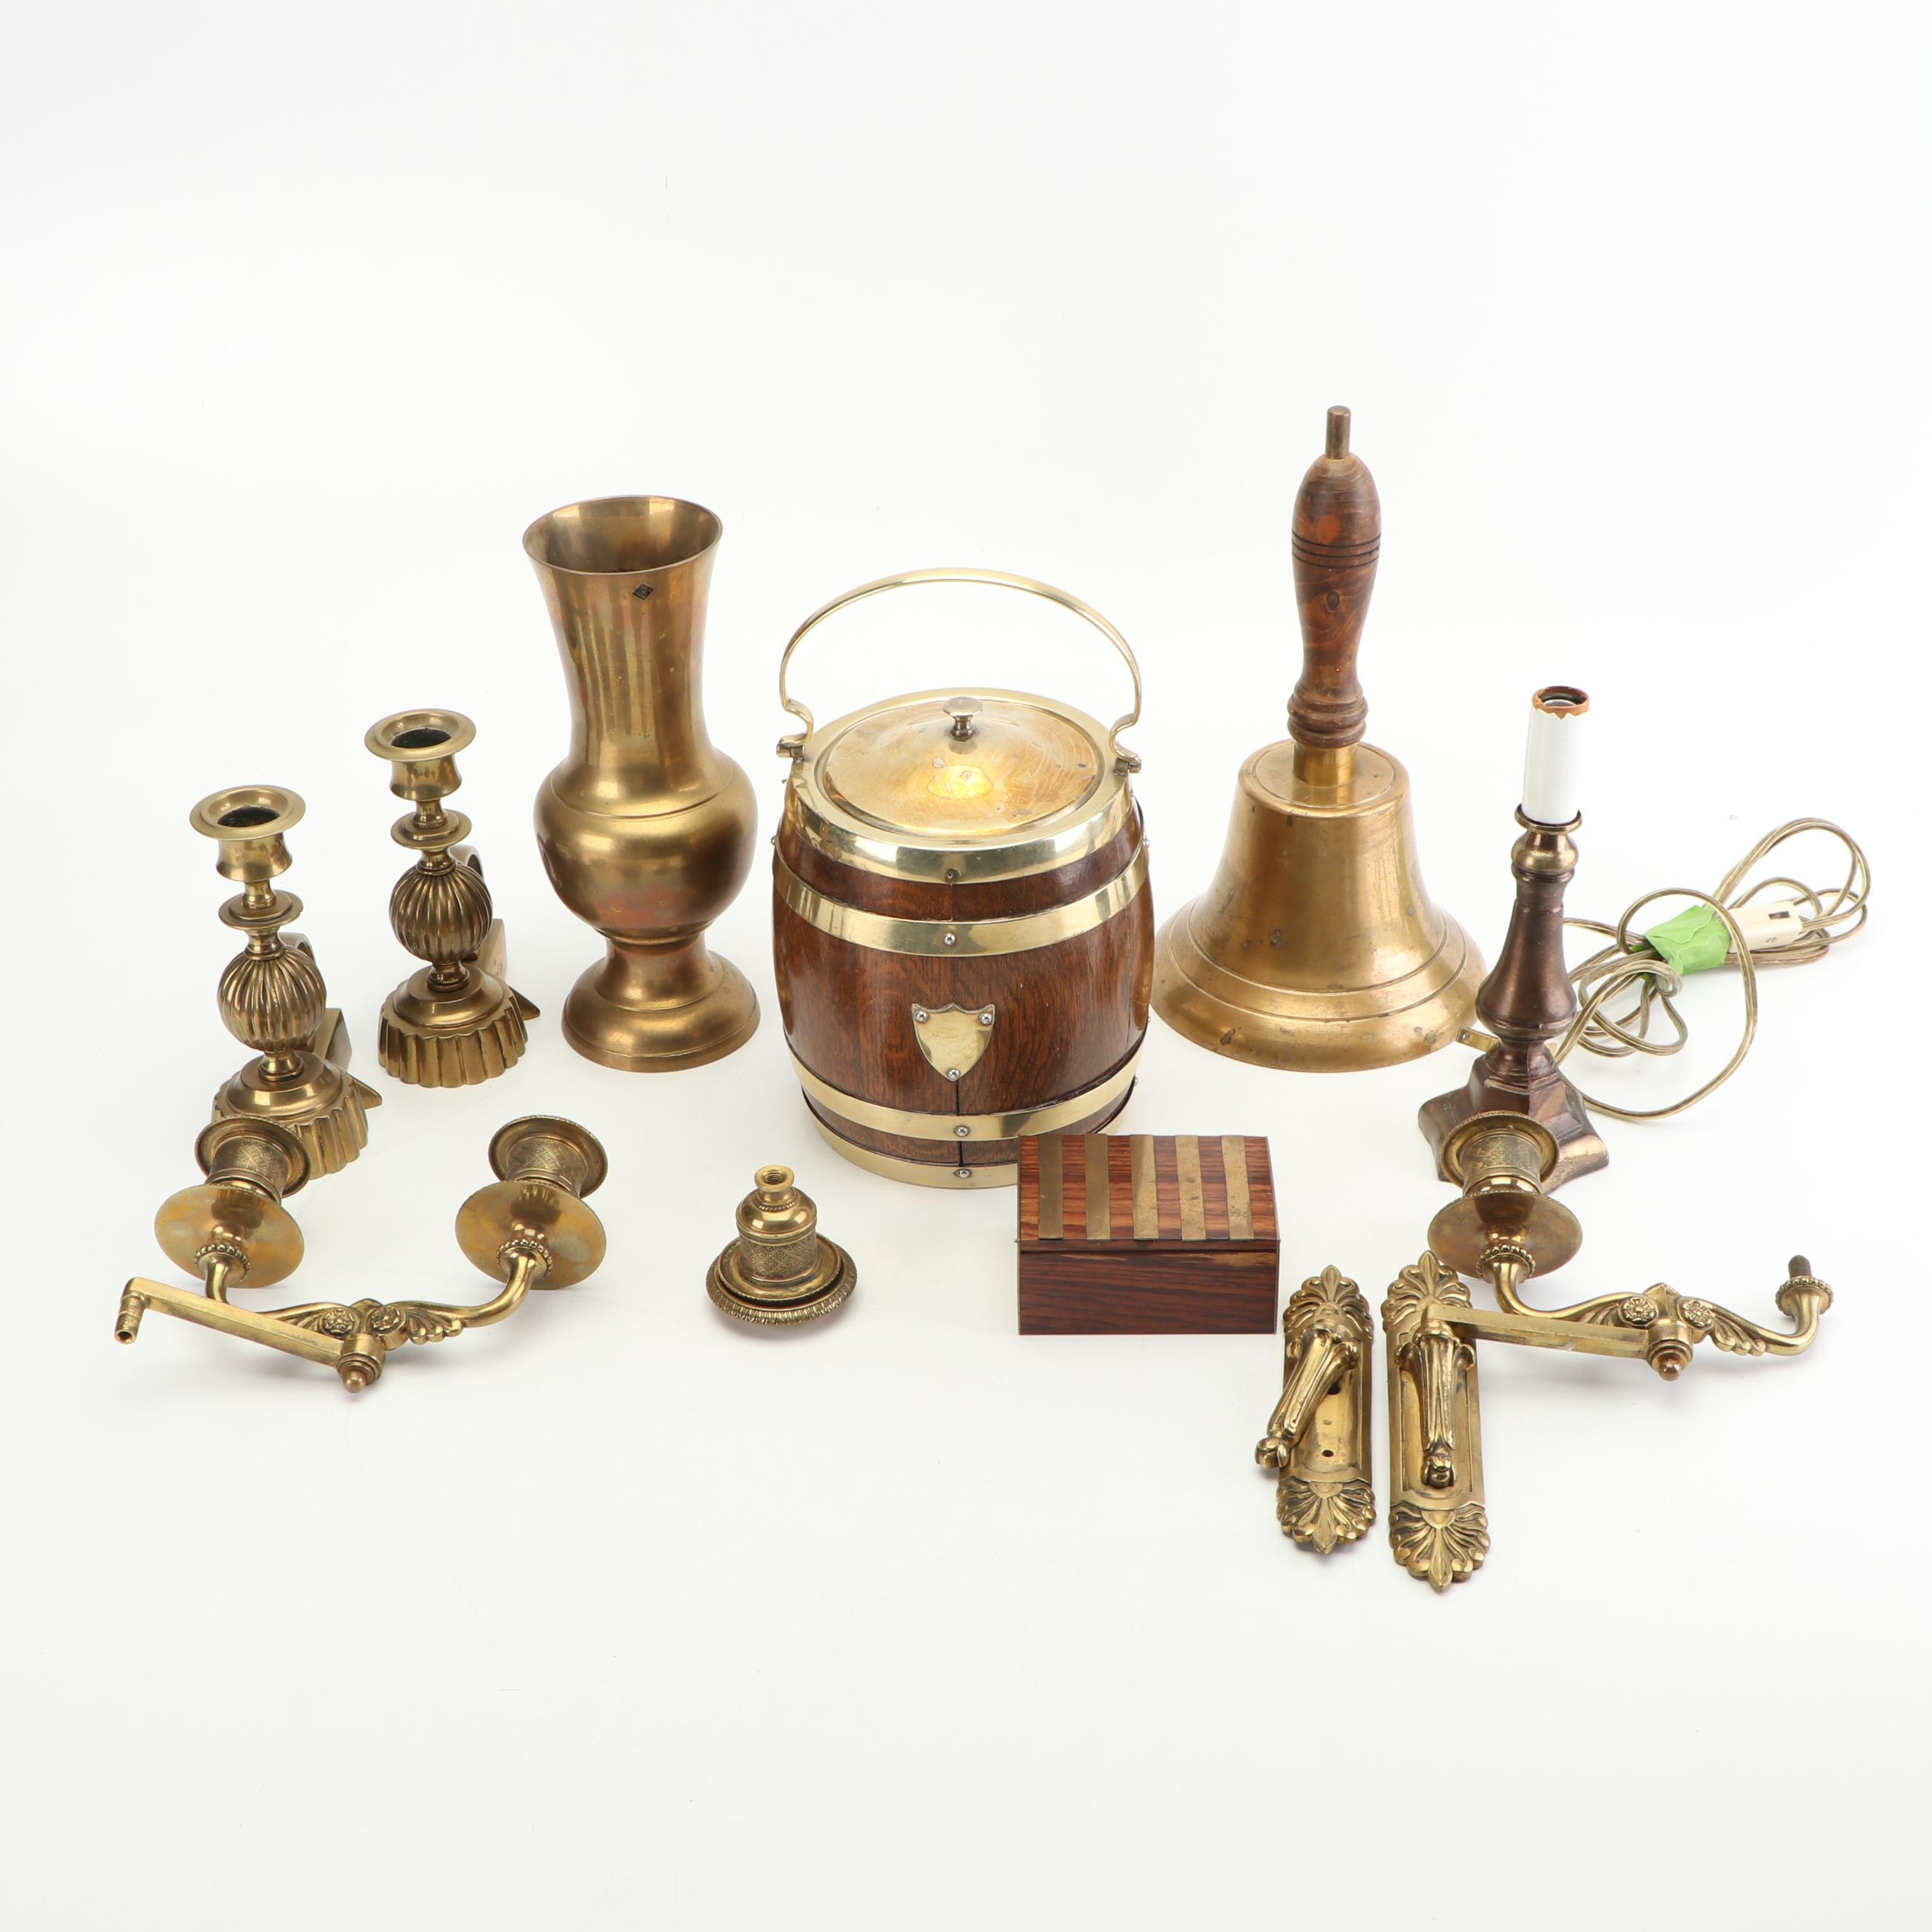 Brass Home Décor including School Bell and Candle Sconces